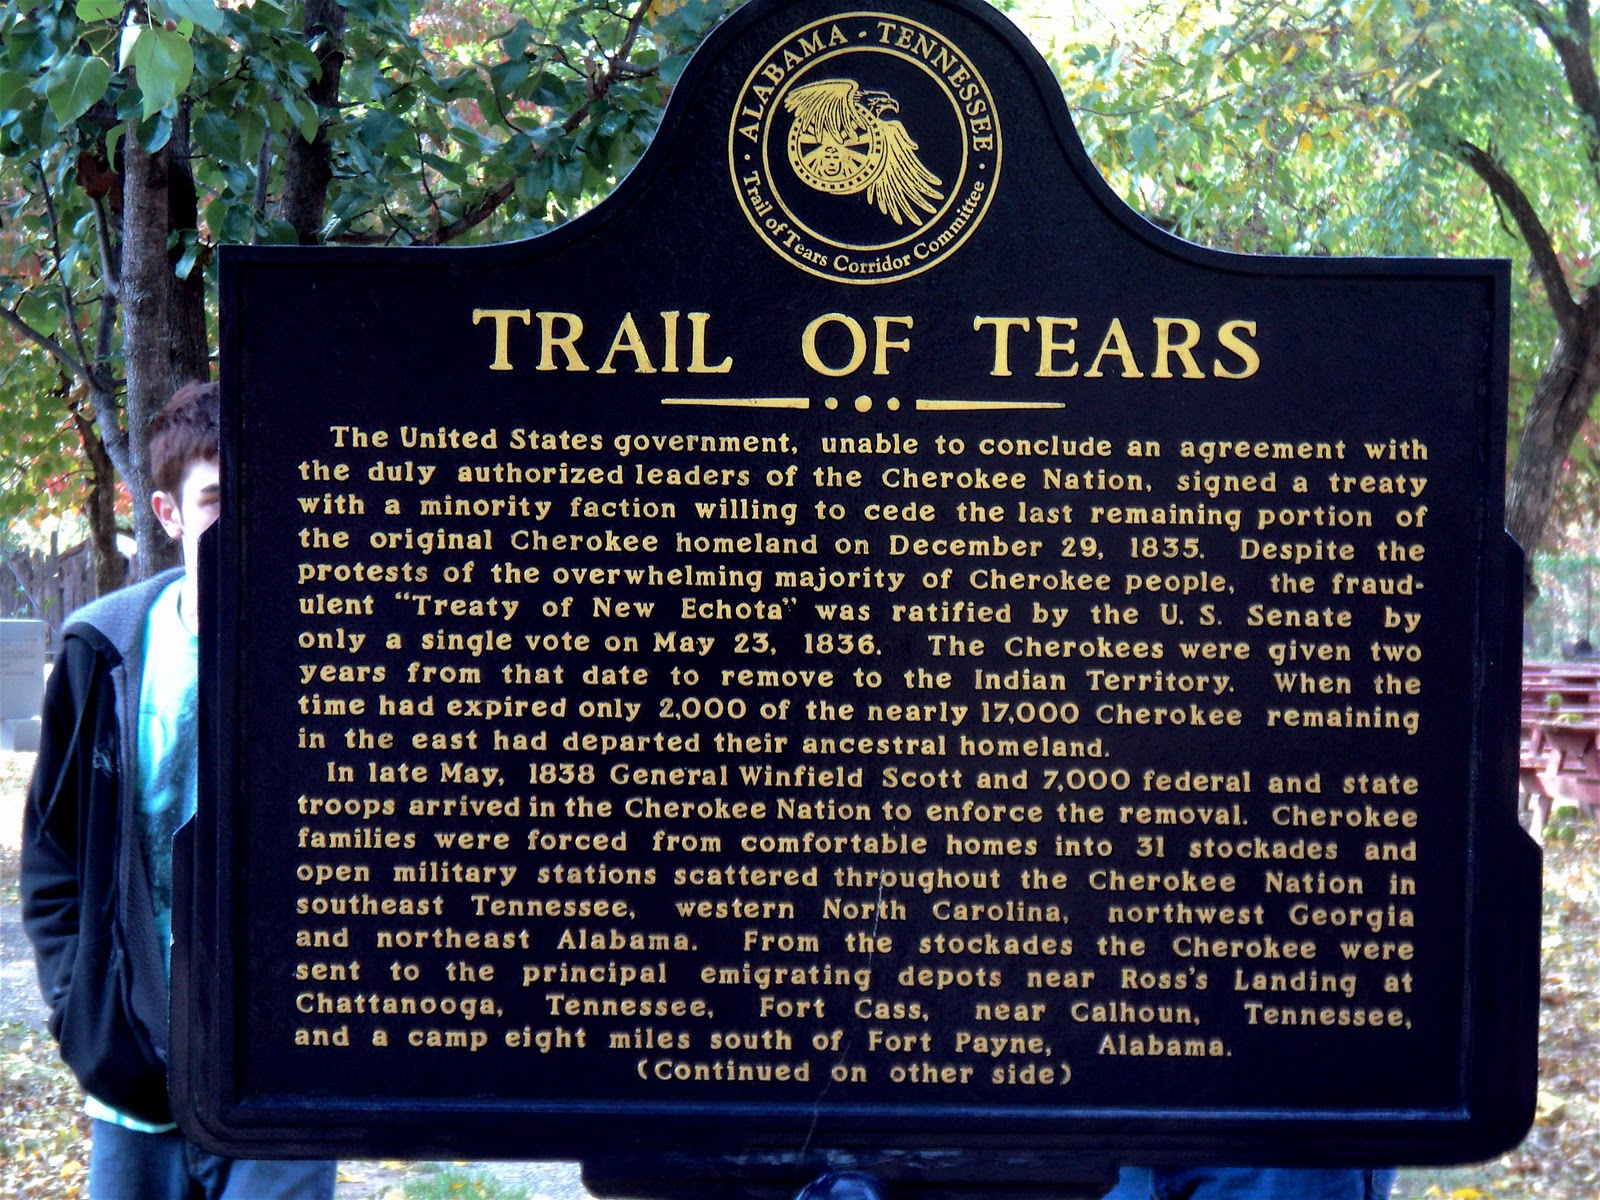 the cherokee peoples' trail of tears The cherokee are probably the most tragic instance of what could have succeeded in american indian policy and didn't all these things that americans would proudly see as the hallmarks of civilization are going to the west by indian people.